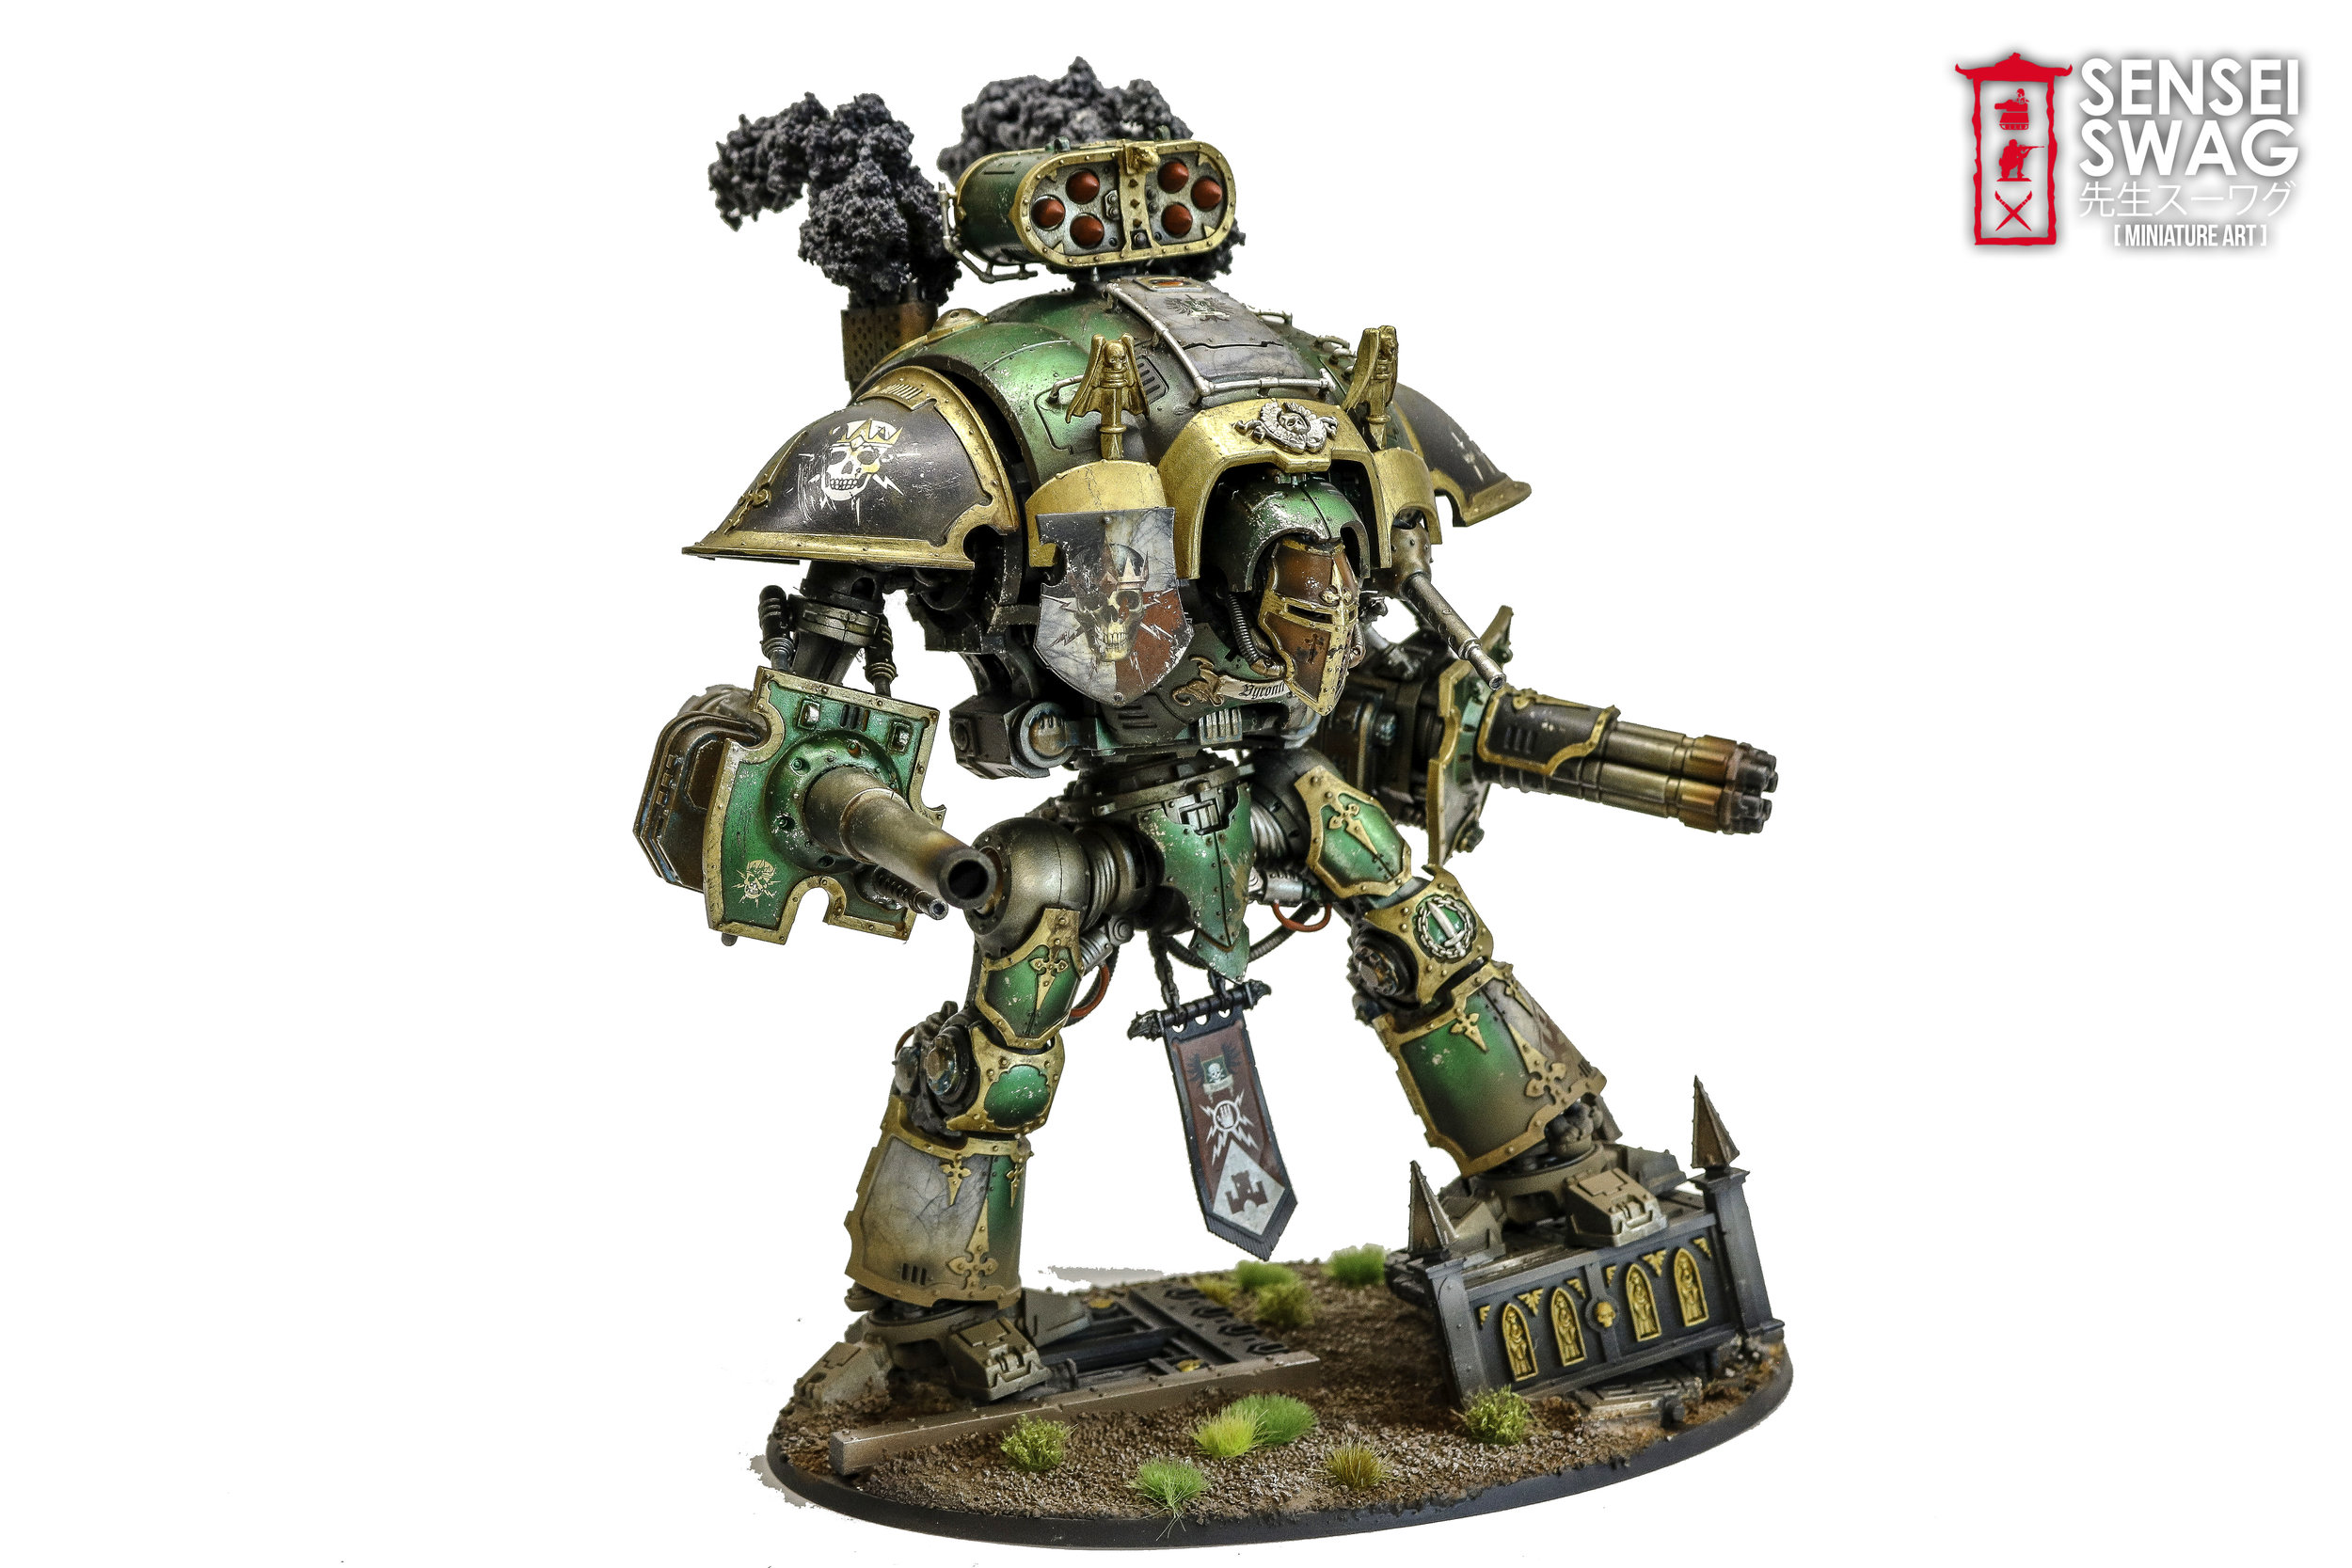 House Vyronii Imperial Knights Crusader Candy Airbrush Watermark-1.jpg